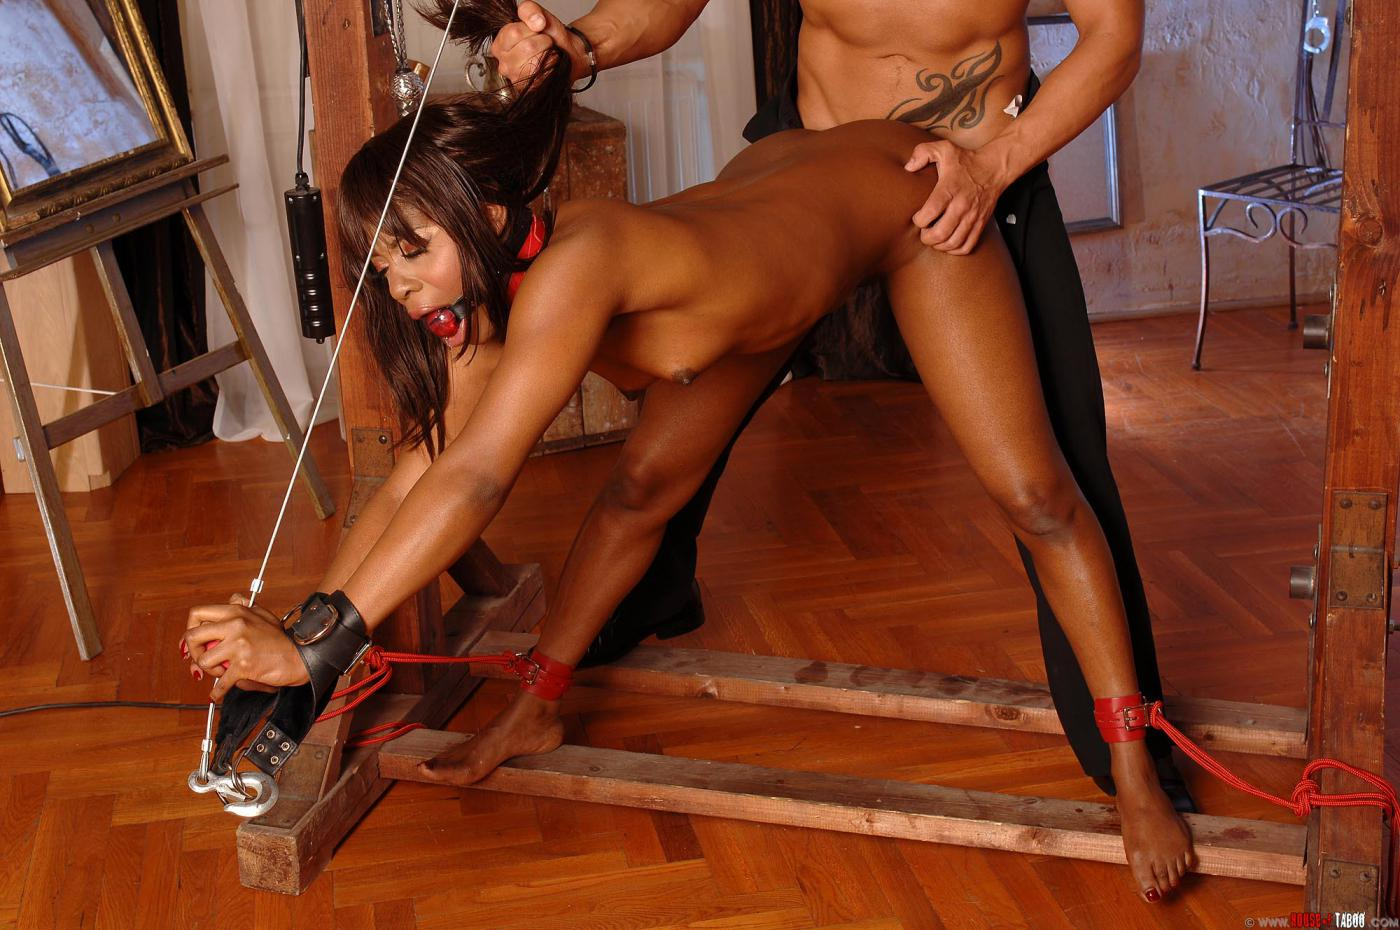 Agree Black sex slave bondage girl